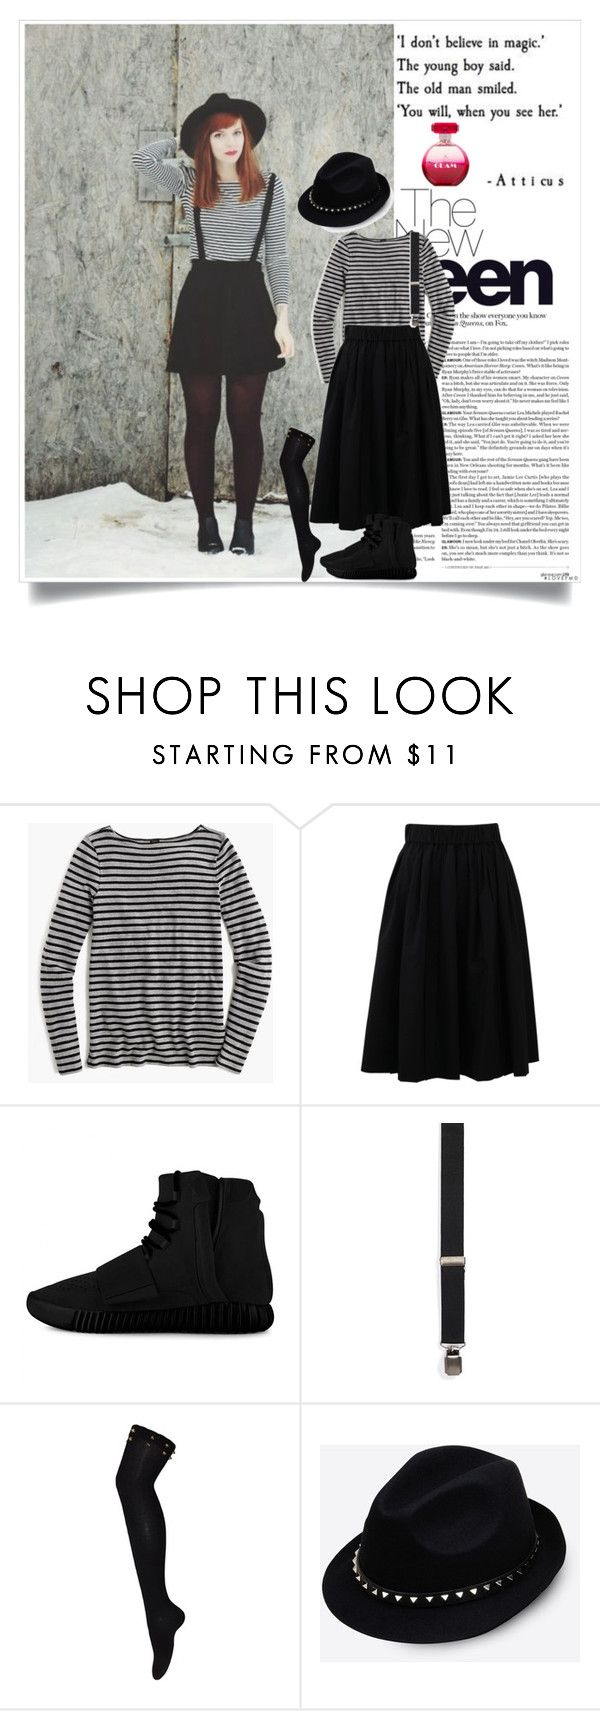 """""""Smileee"""" by bamra ❤ liked on Polyvore featuring J.Crew, Brunello Cucinelli, adidas, Topman, Valentino, women's clothing, women's fashion, women, female and woman"""